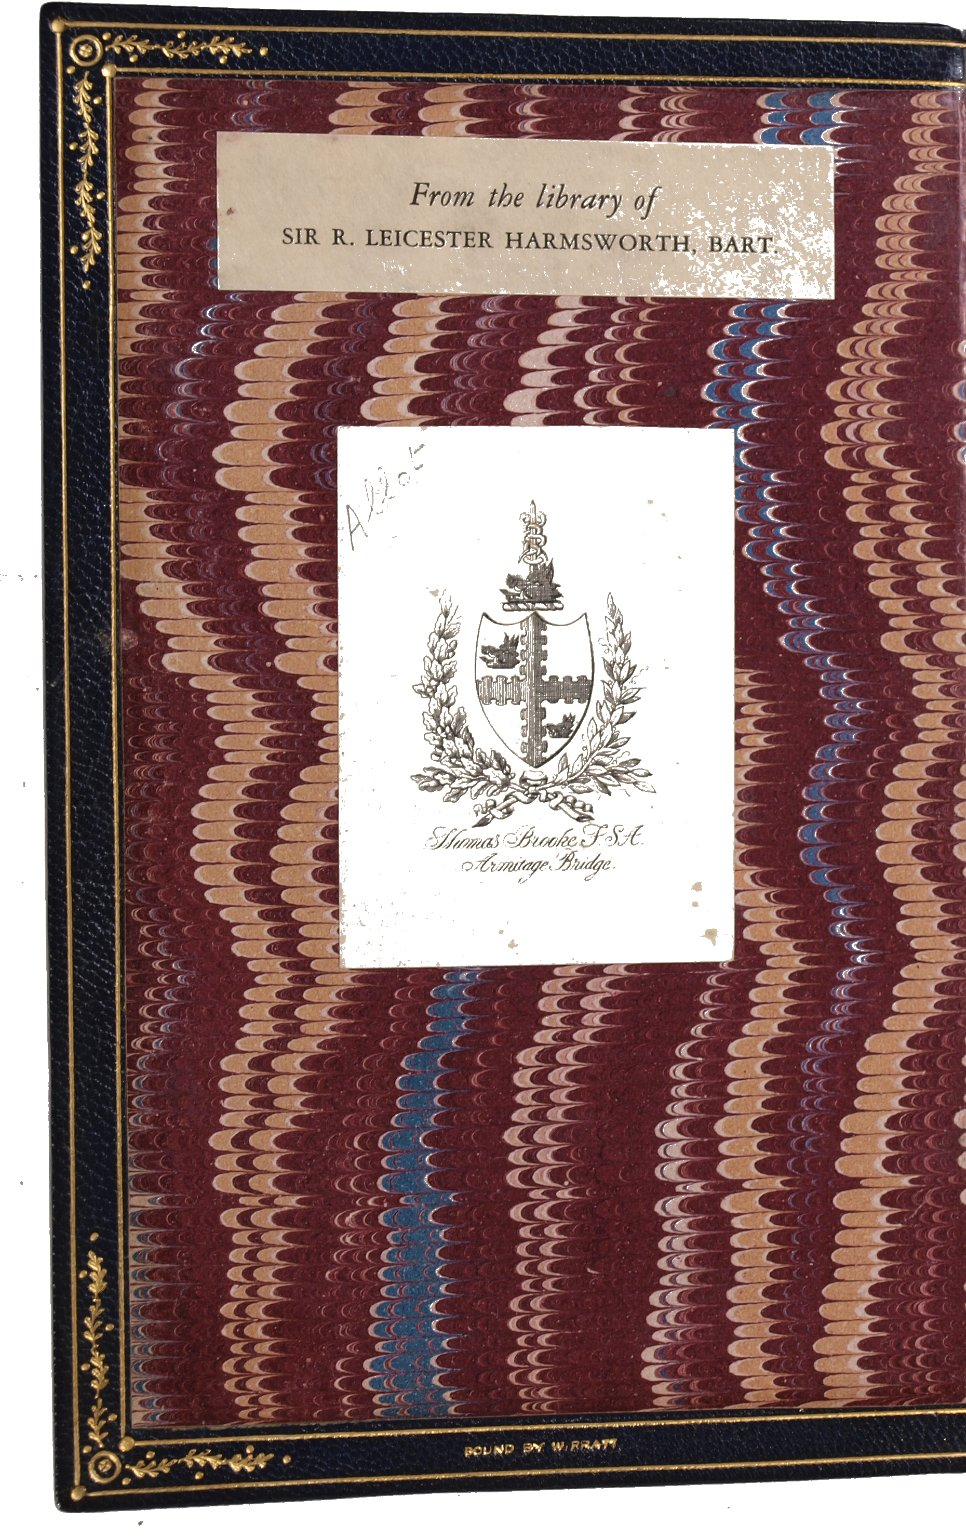 Inside front cover, STC 378 copy 2.